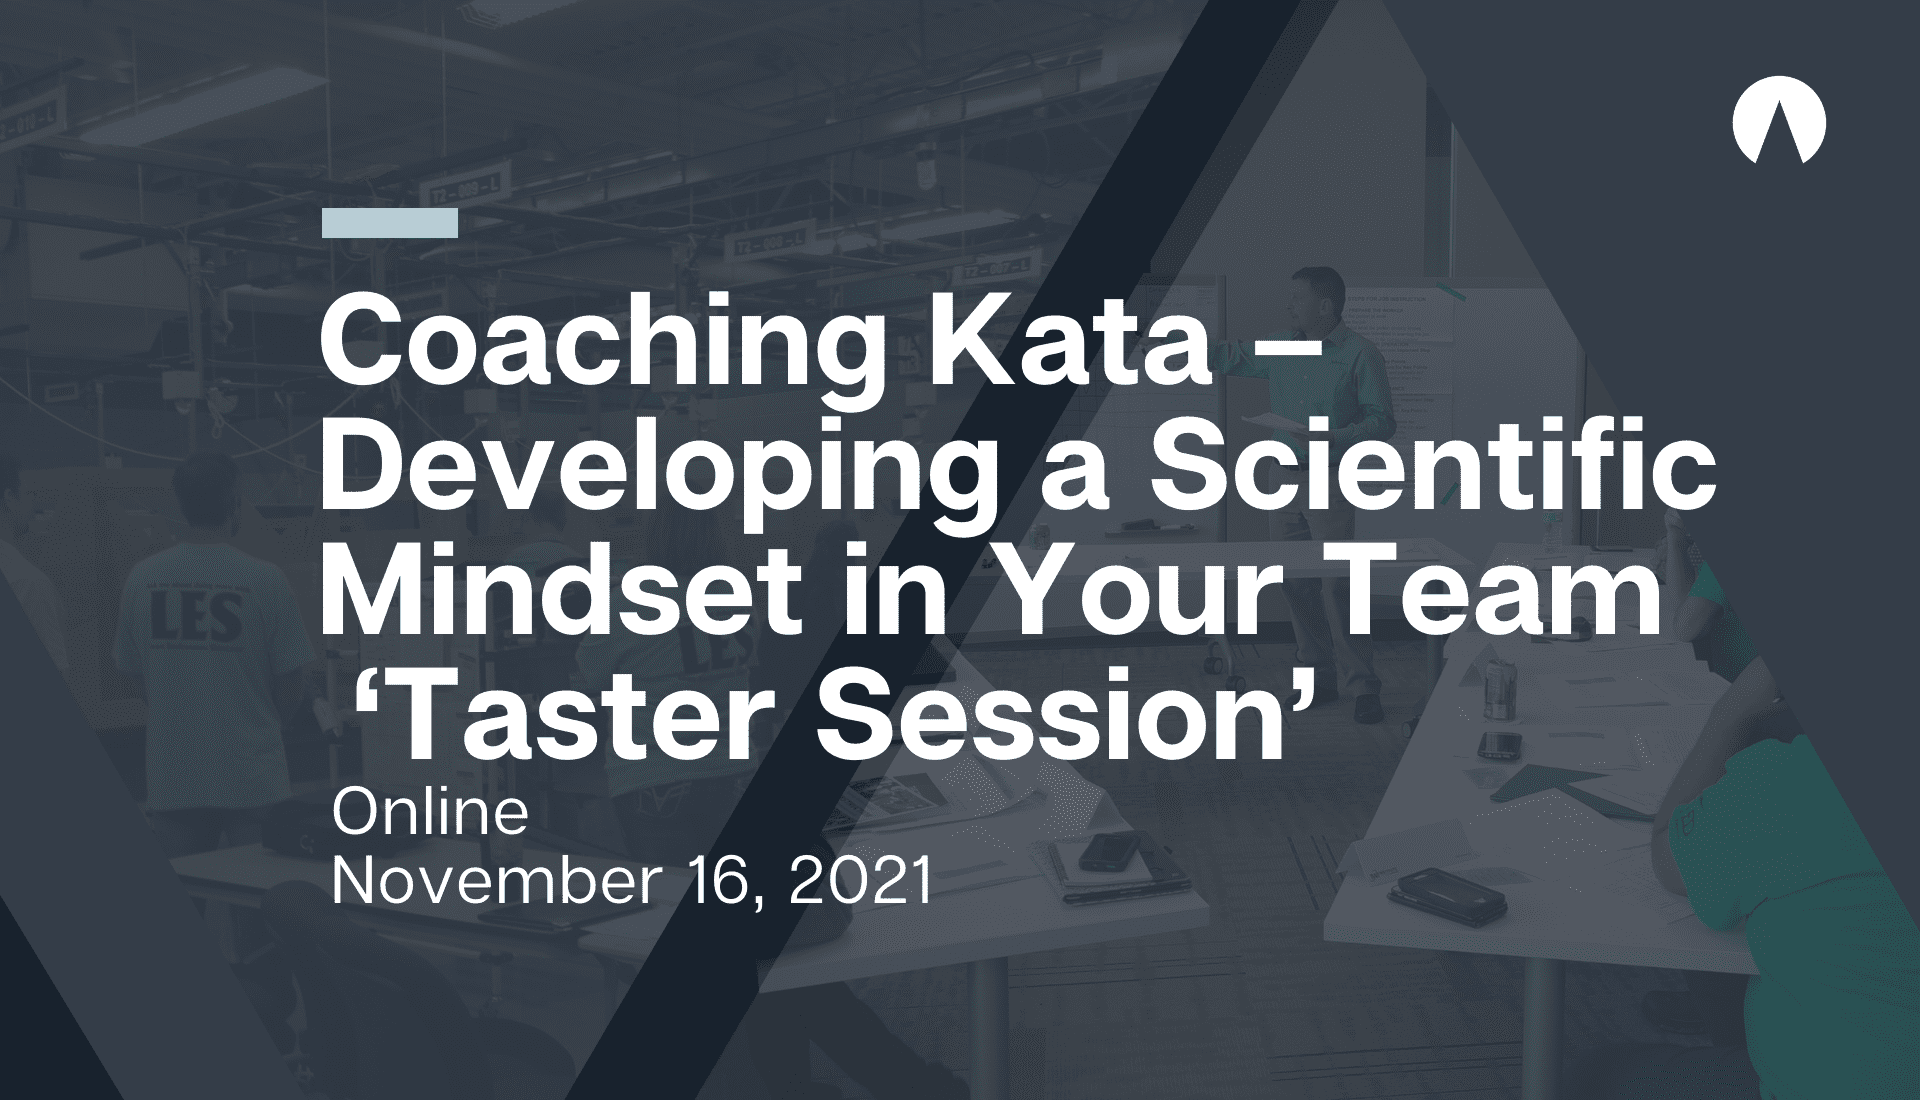 Coaching Kata- Developing a Scientific Mindset in Your Team- A taster session